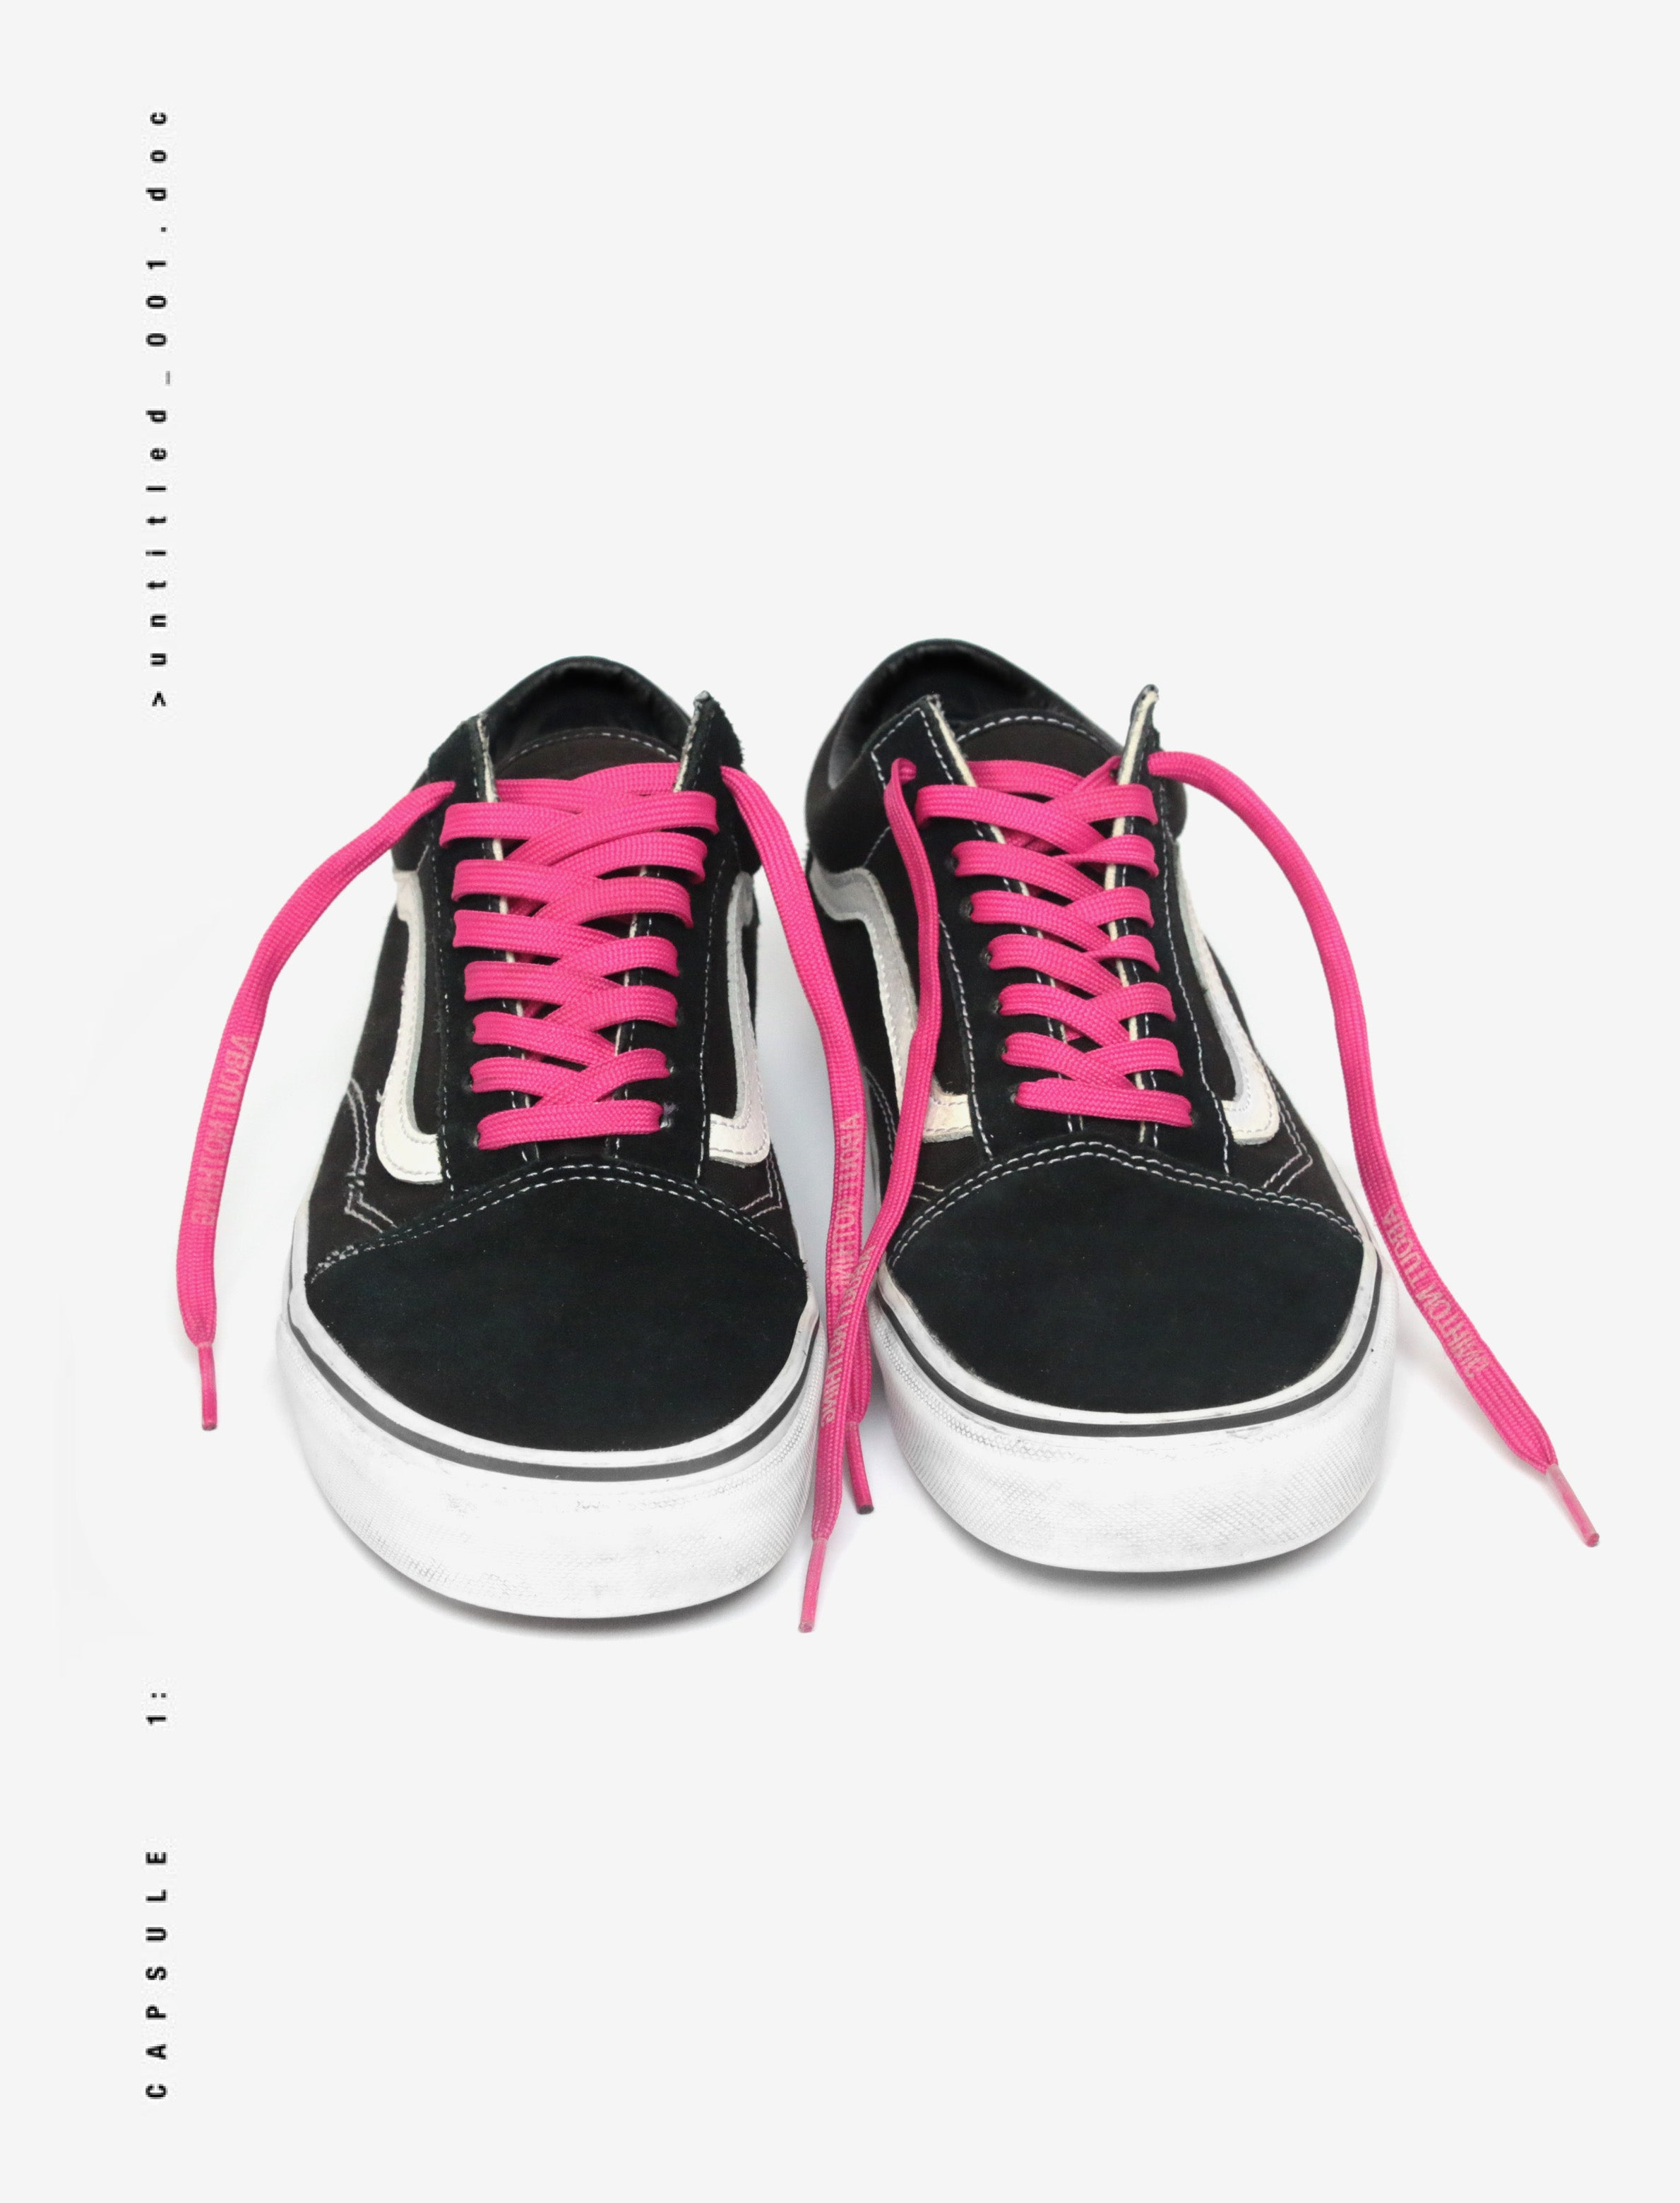 REFLECTIVE LOGO NEON SHOELACES PACK [4 UNITS]